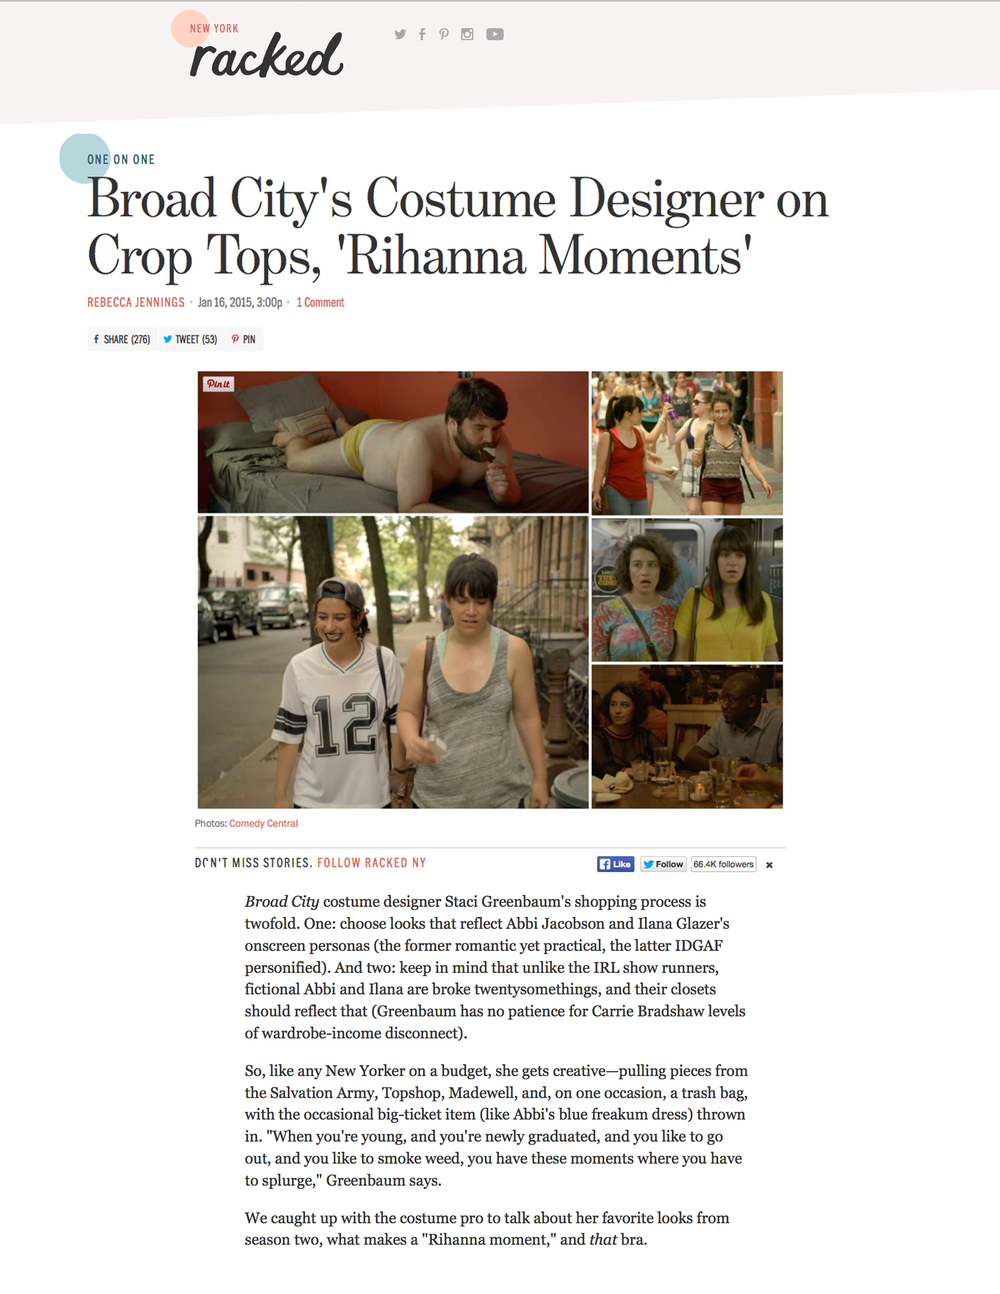 NY RACKED    BROAD CITY'S COSTUME DESIGNER ON CROP TOPS, 'RIHANNA MOMENTS'    JANUARY 2015